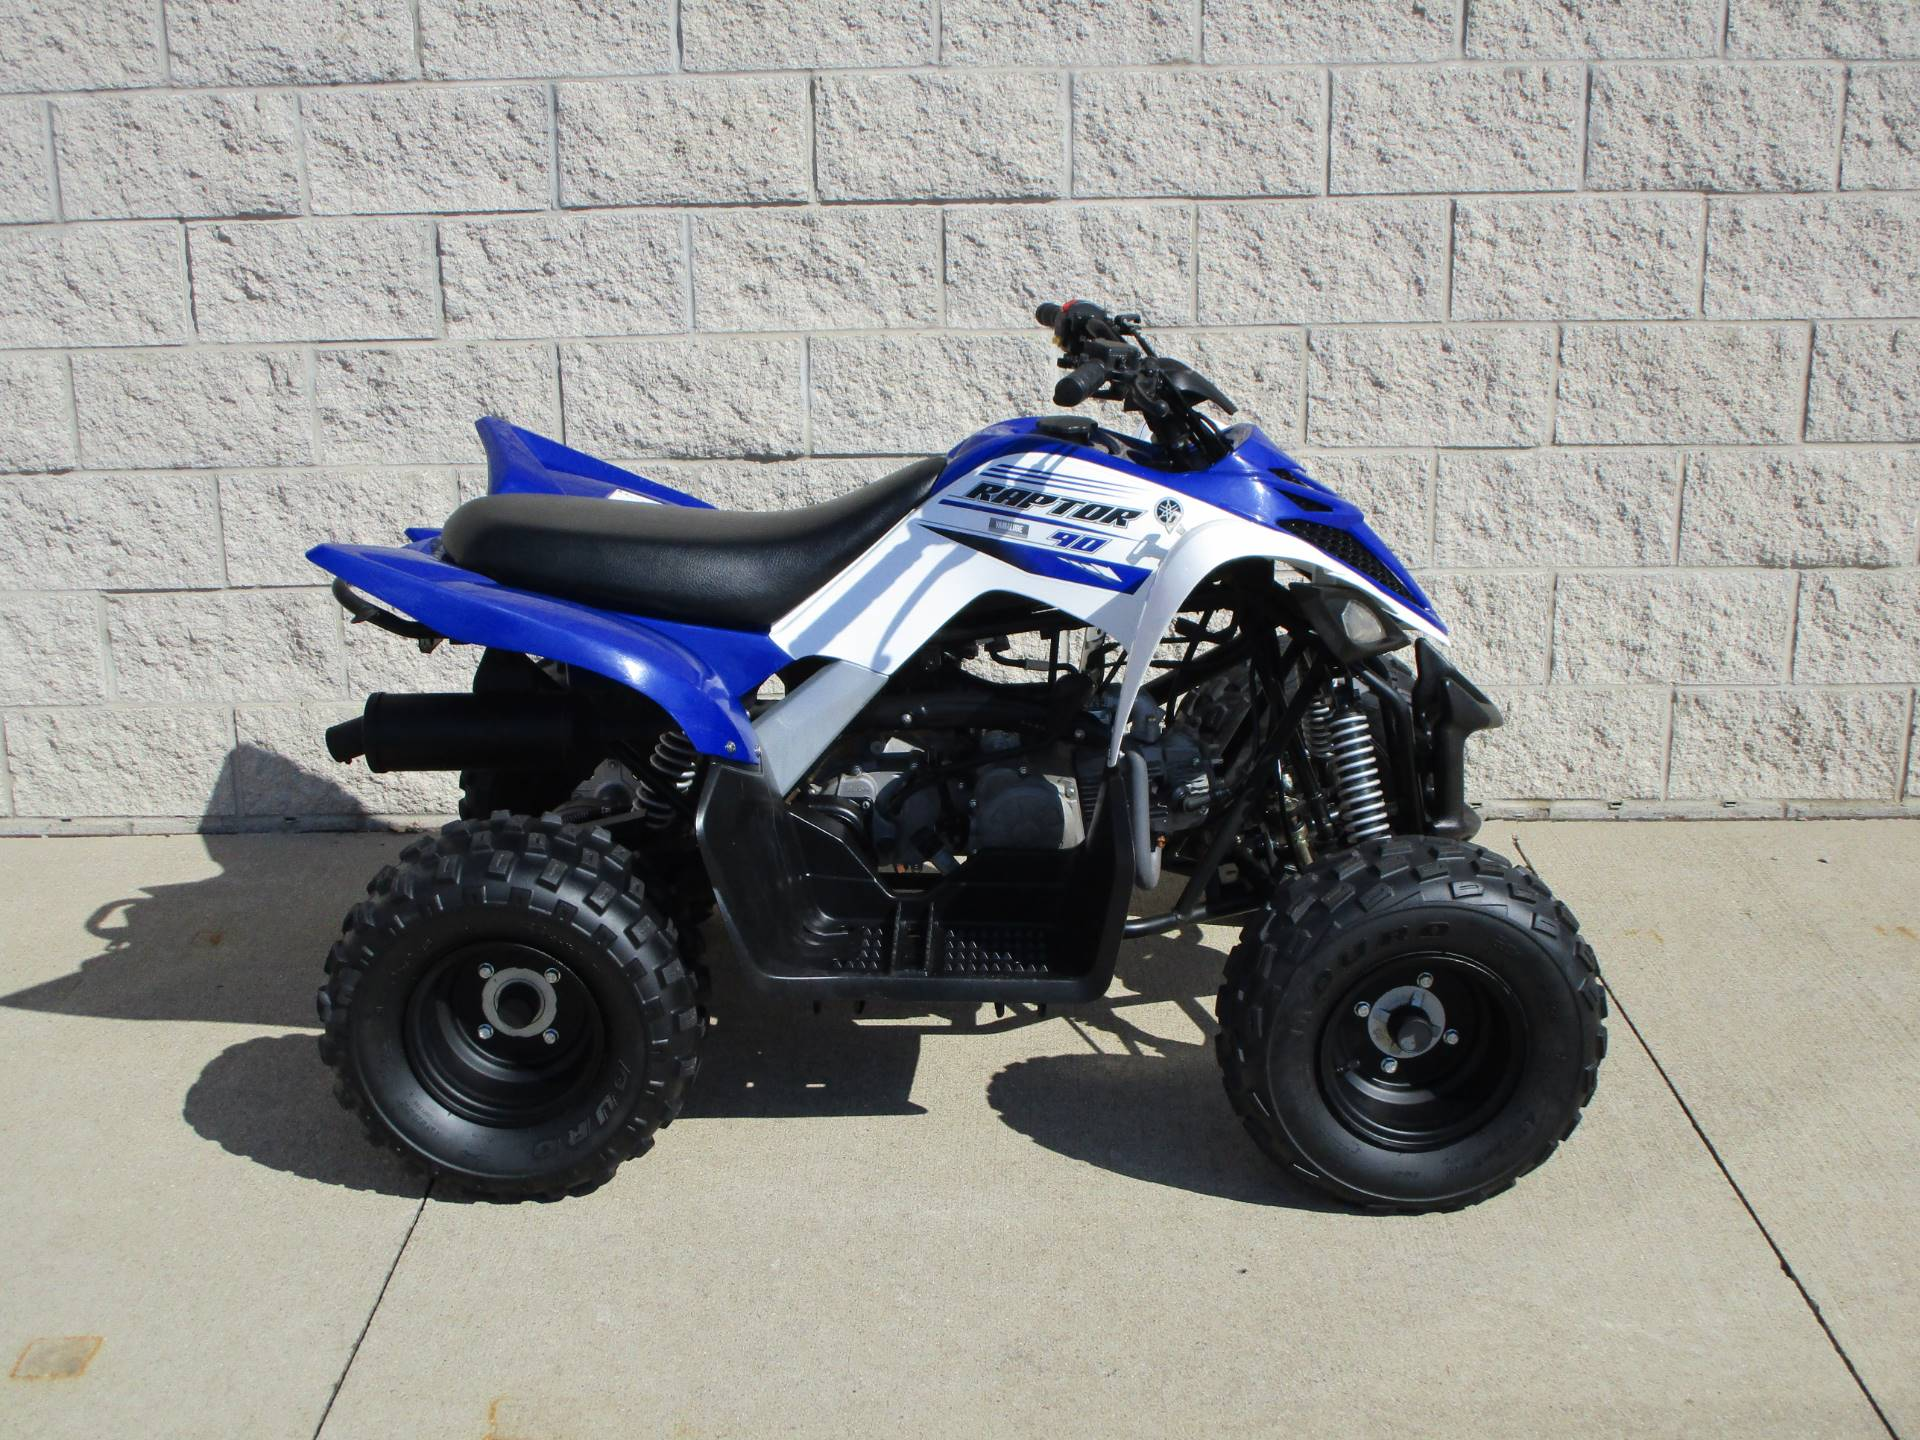 2016 Yamaha Raptor 90 for sale 80918